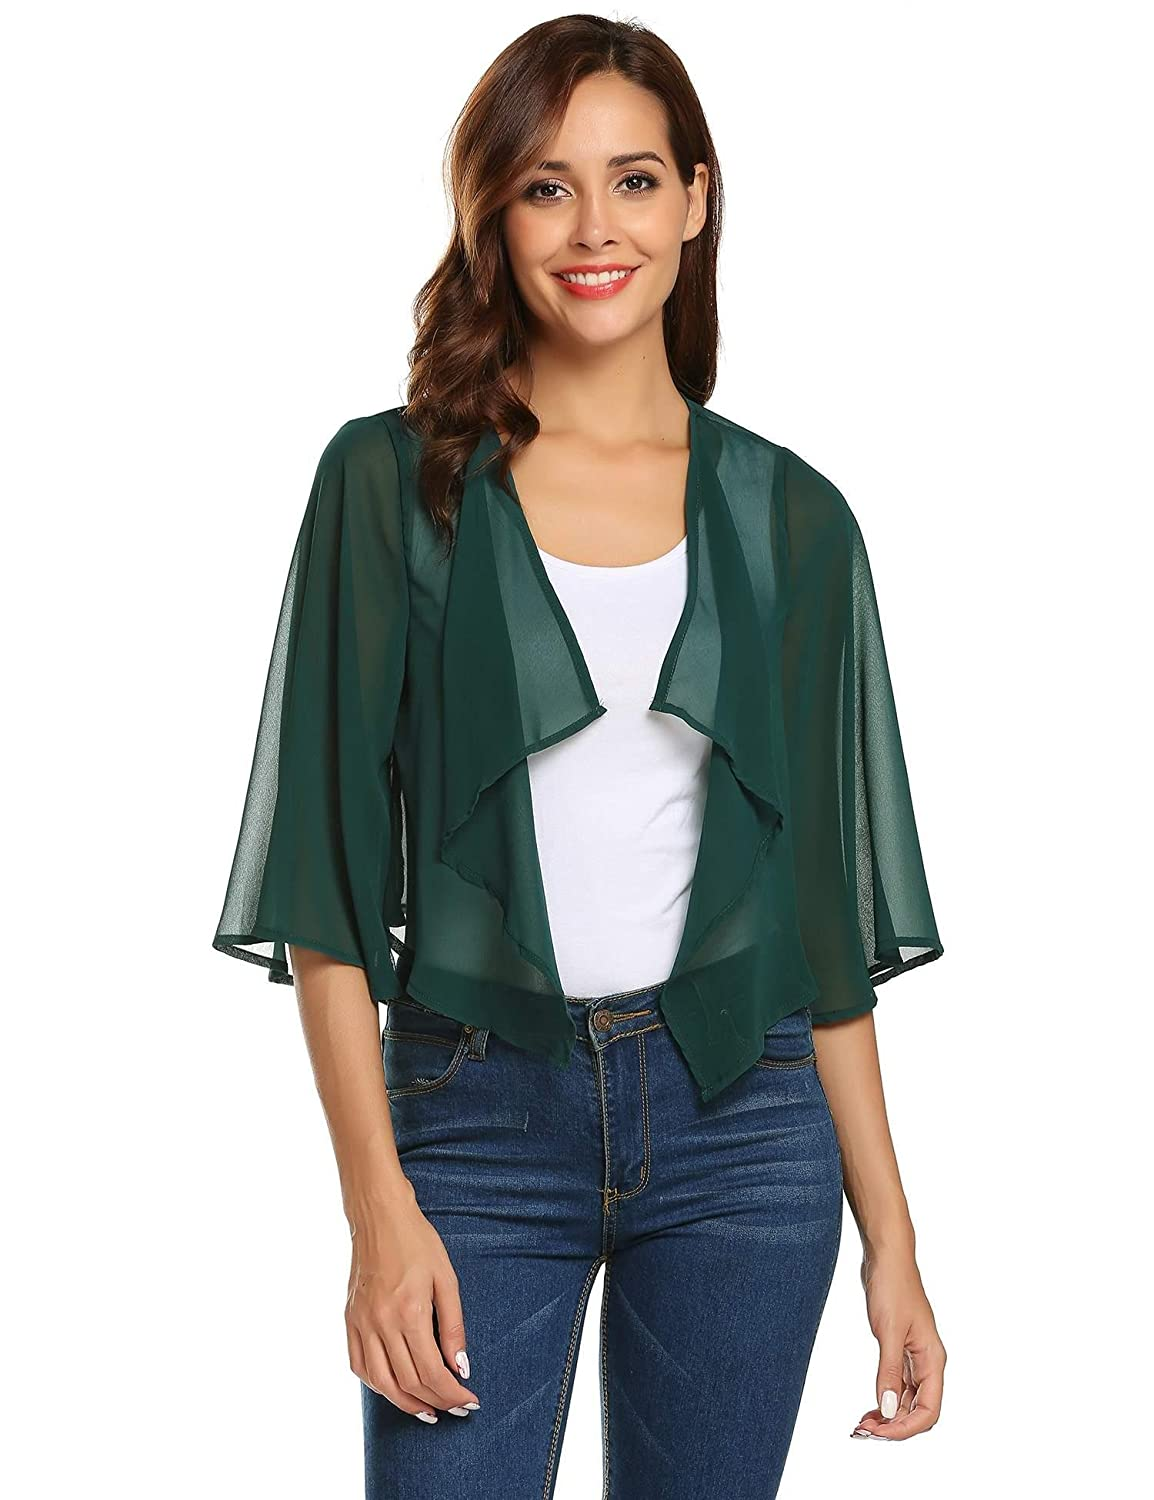 Pinspark Women's Sheer Bolero Shrug Shawl Chiffon Thin Cardigan